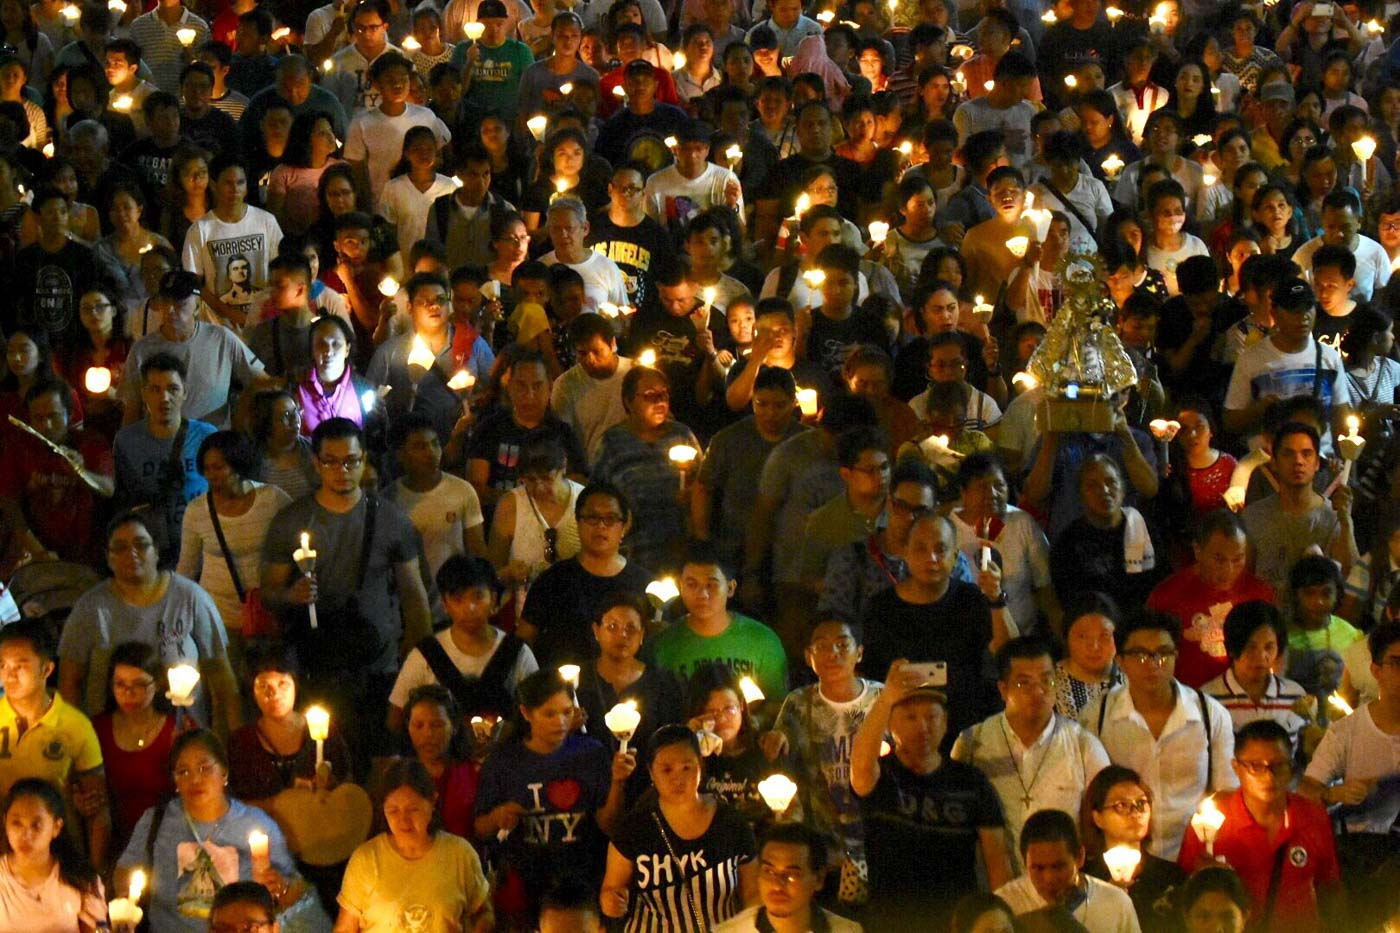 MIRACULOUS. Many Catholics pray to Our Lady of the Most Holy Rosary for miracles and everyday needs. Photo by Angie de Silva/Rappler